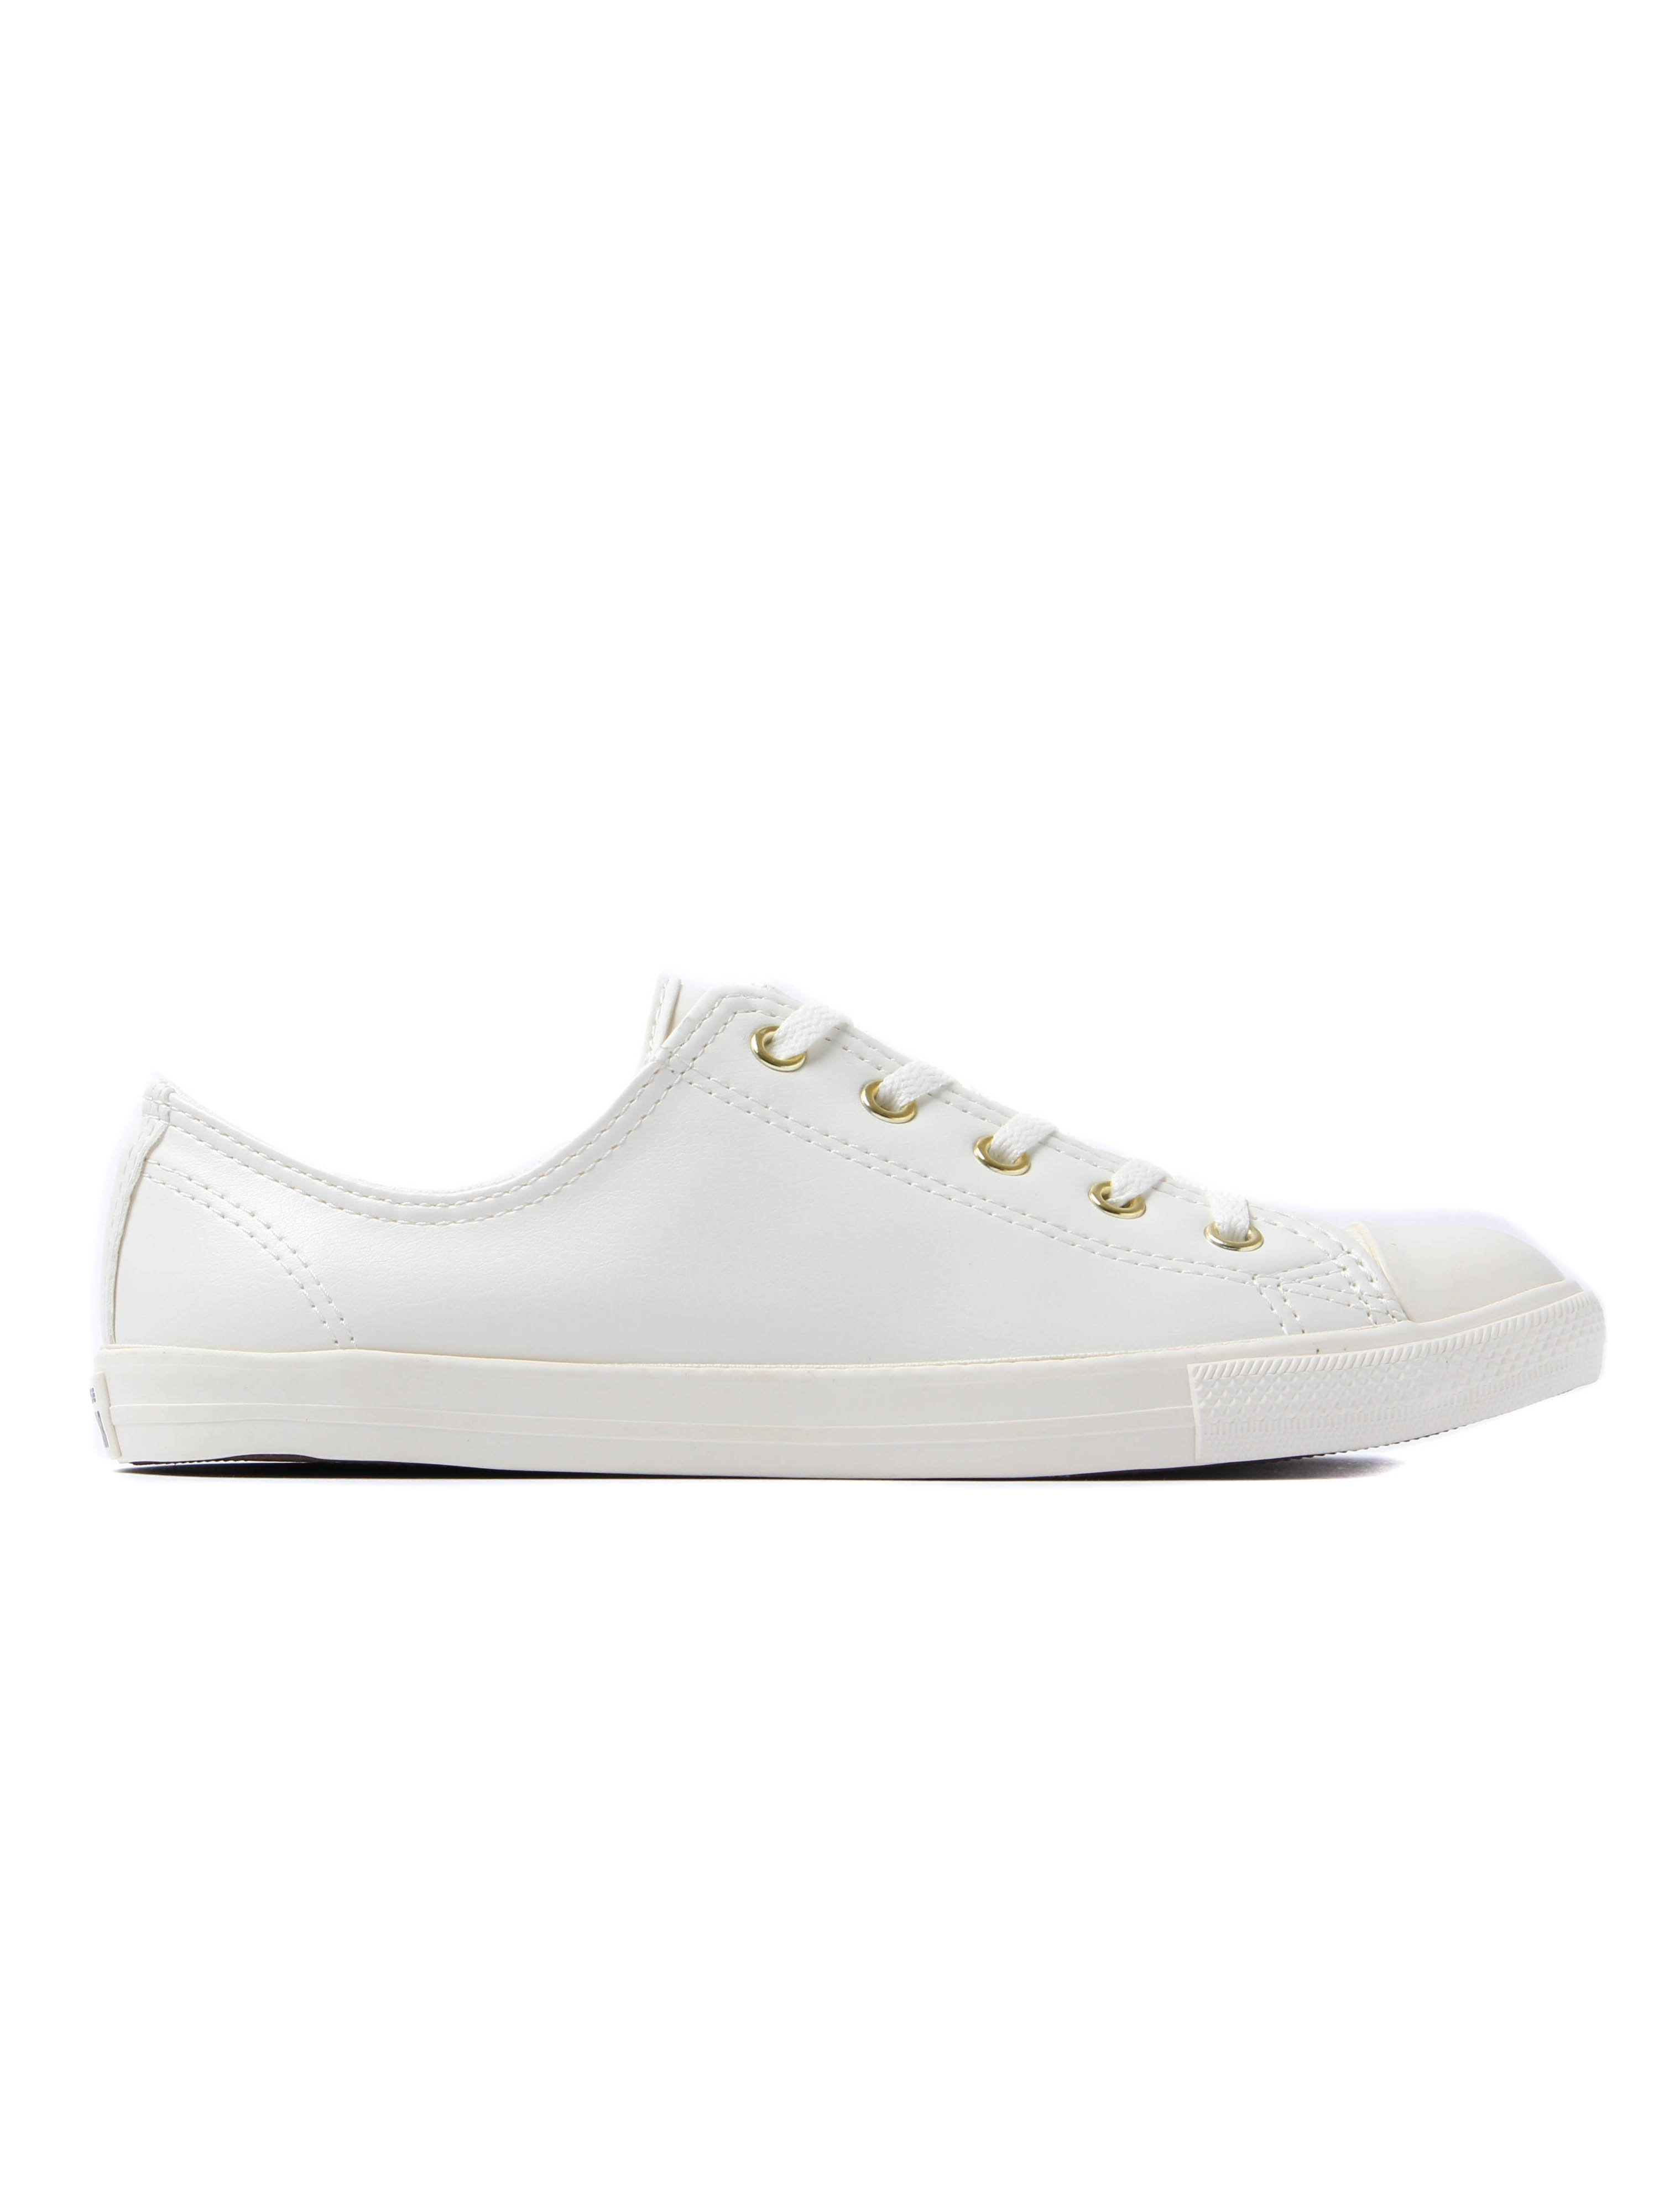 Converse Women's Chuck Taylor All Star Dainty OX Trainers - Egret